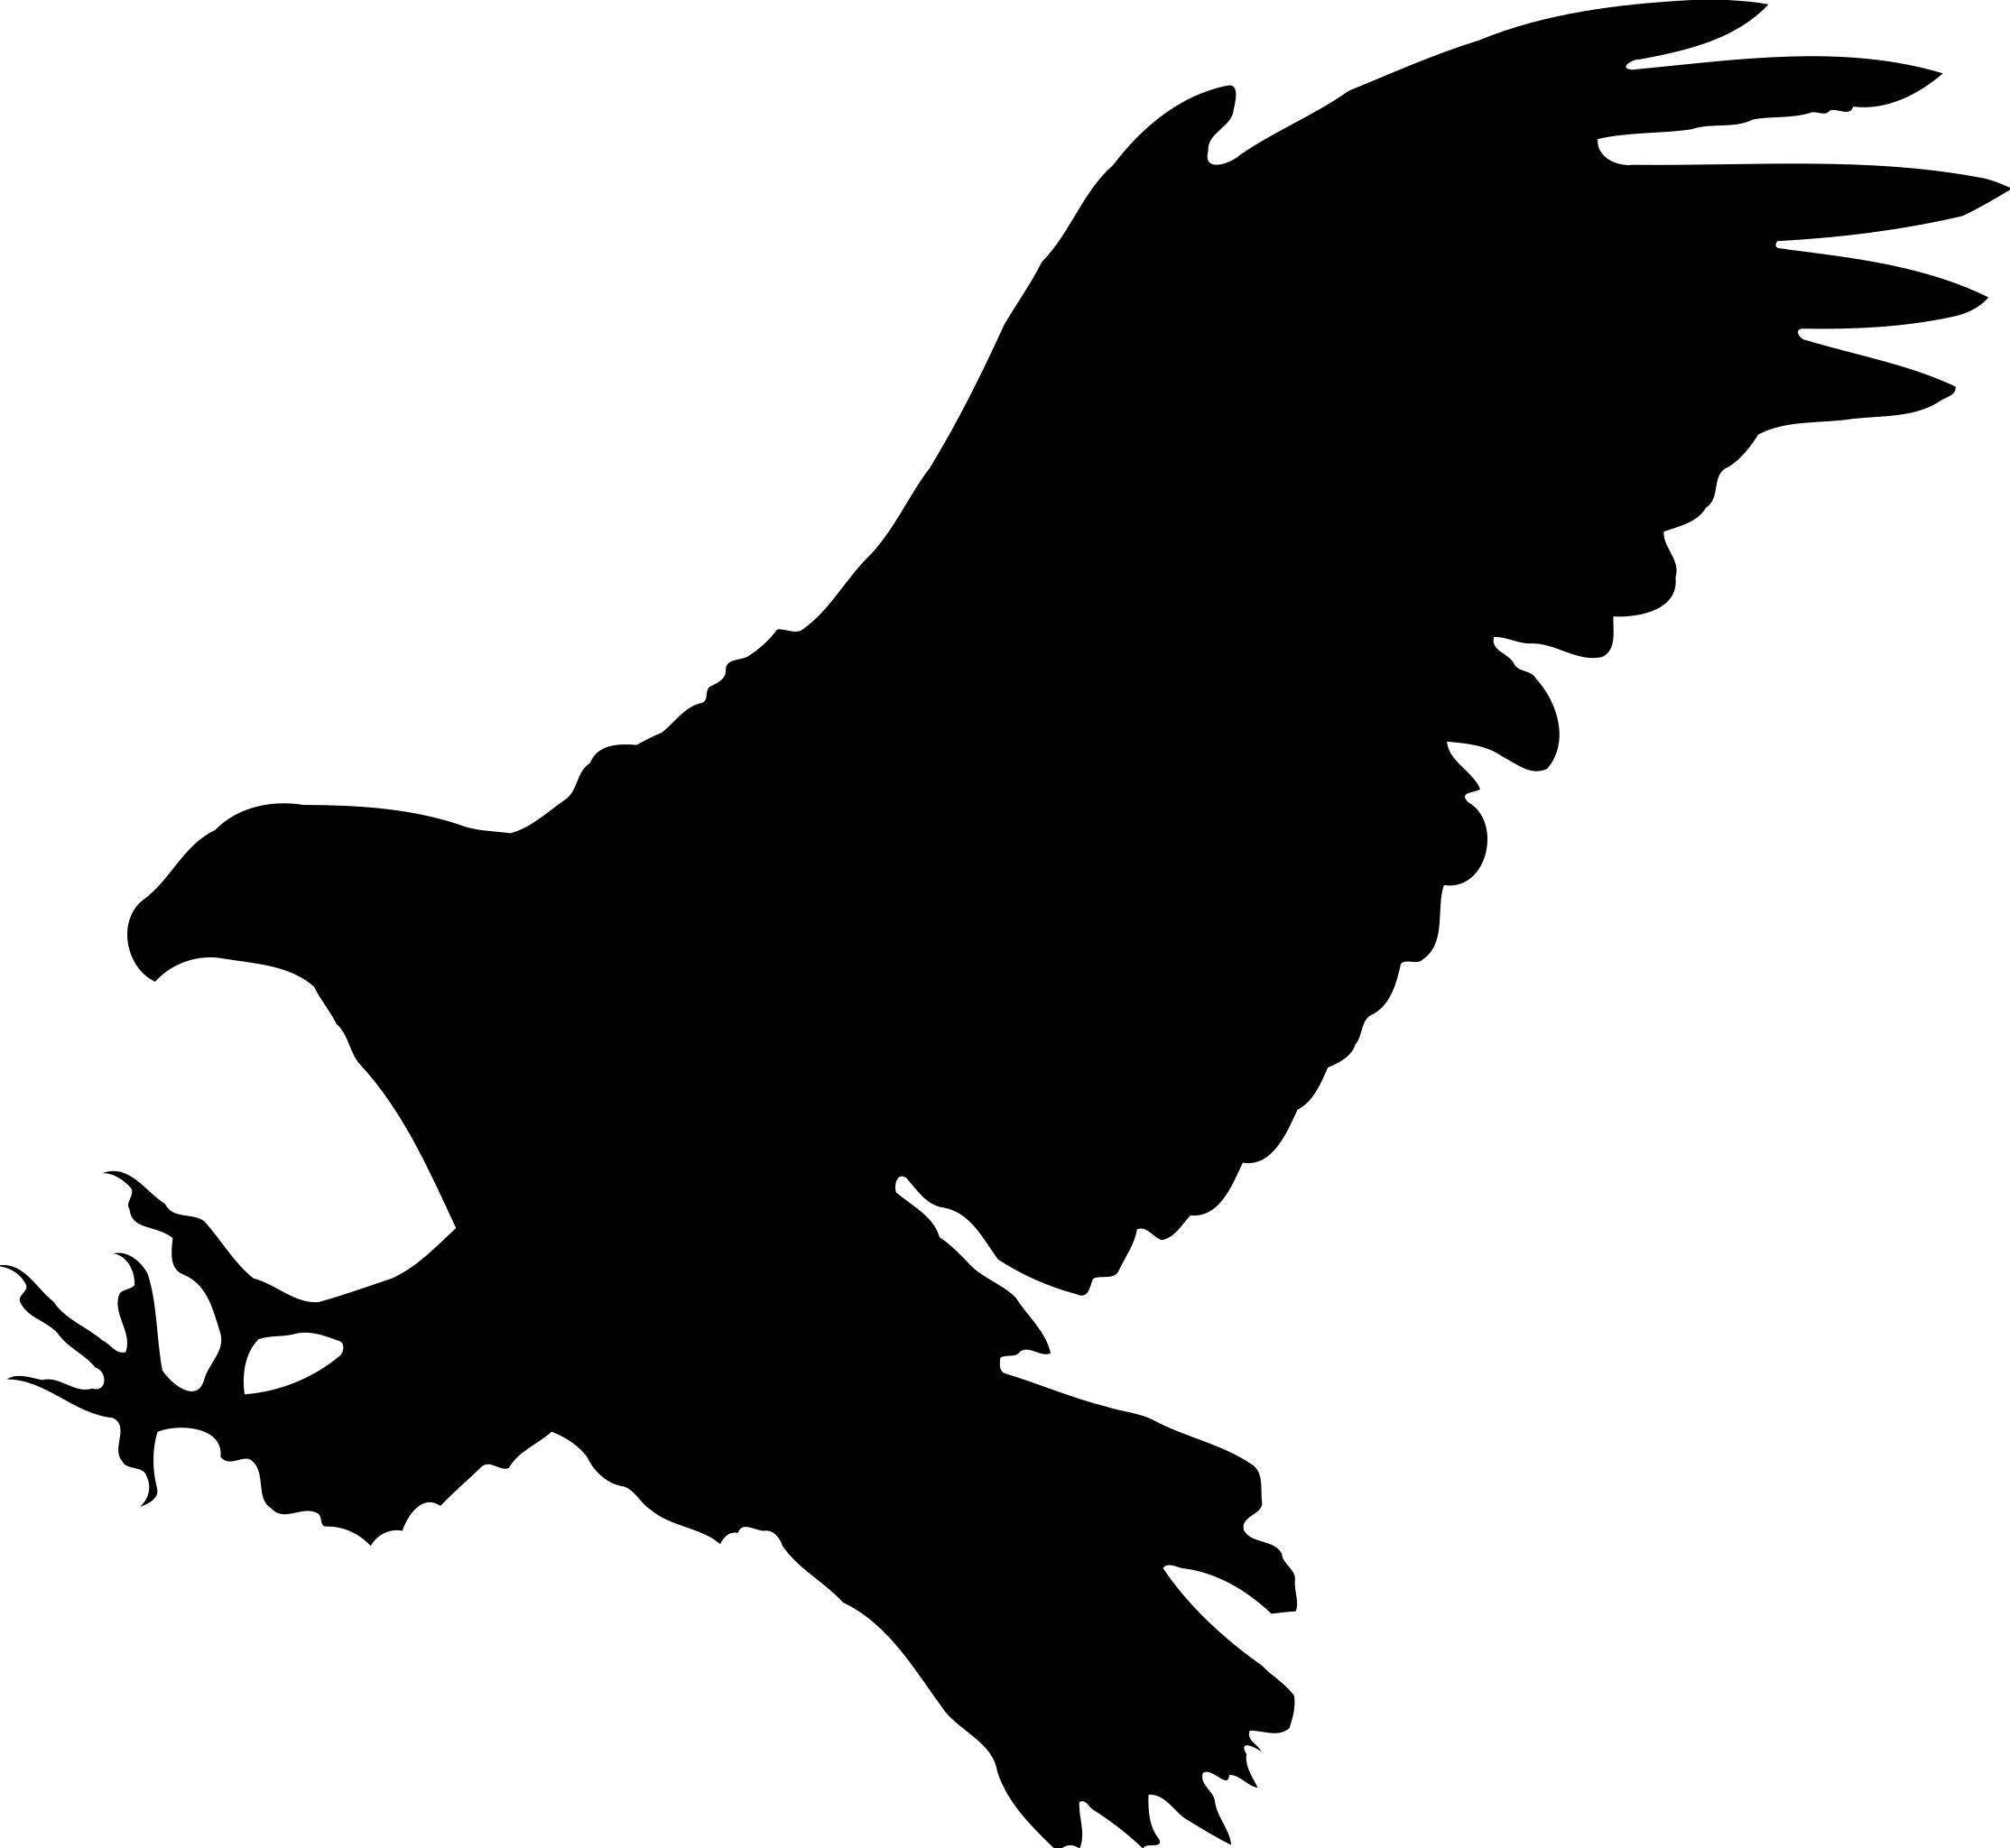 Eagle silhouette clipart 4 » Clipart Station.